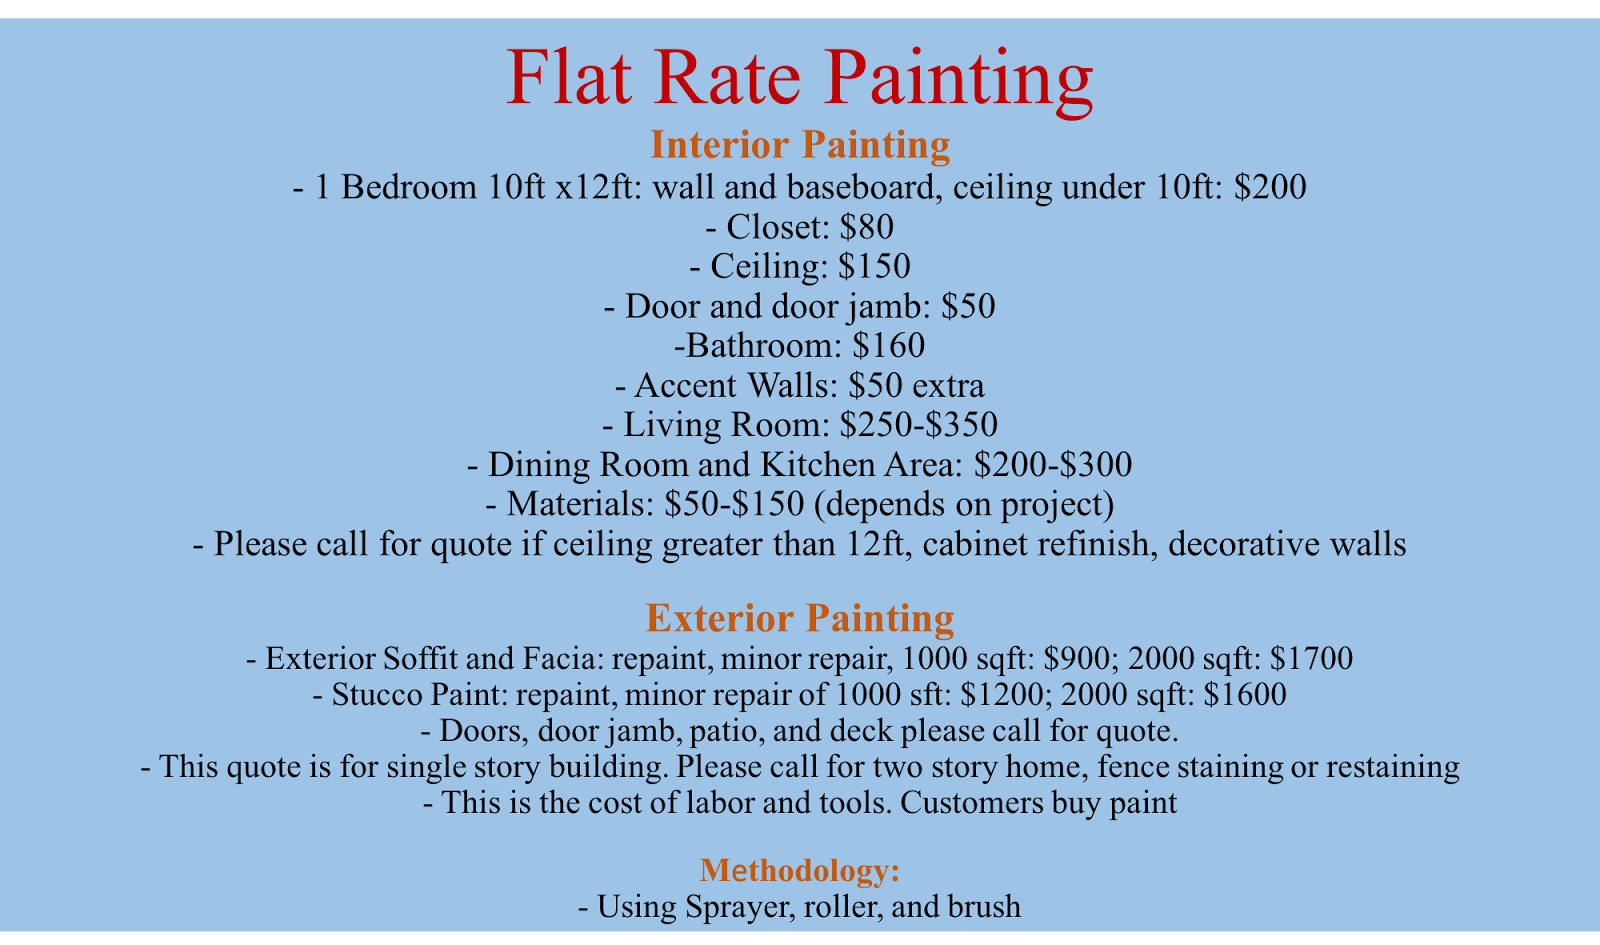 September 22, 2017 Flat Rate Painting